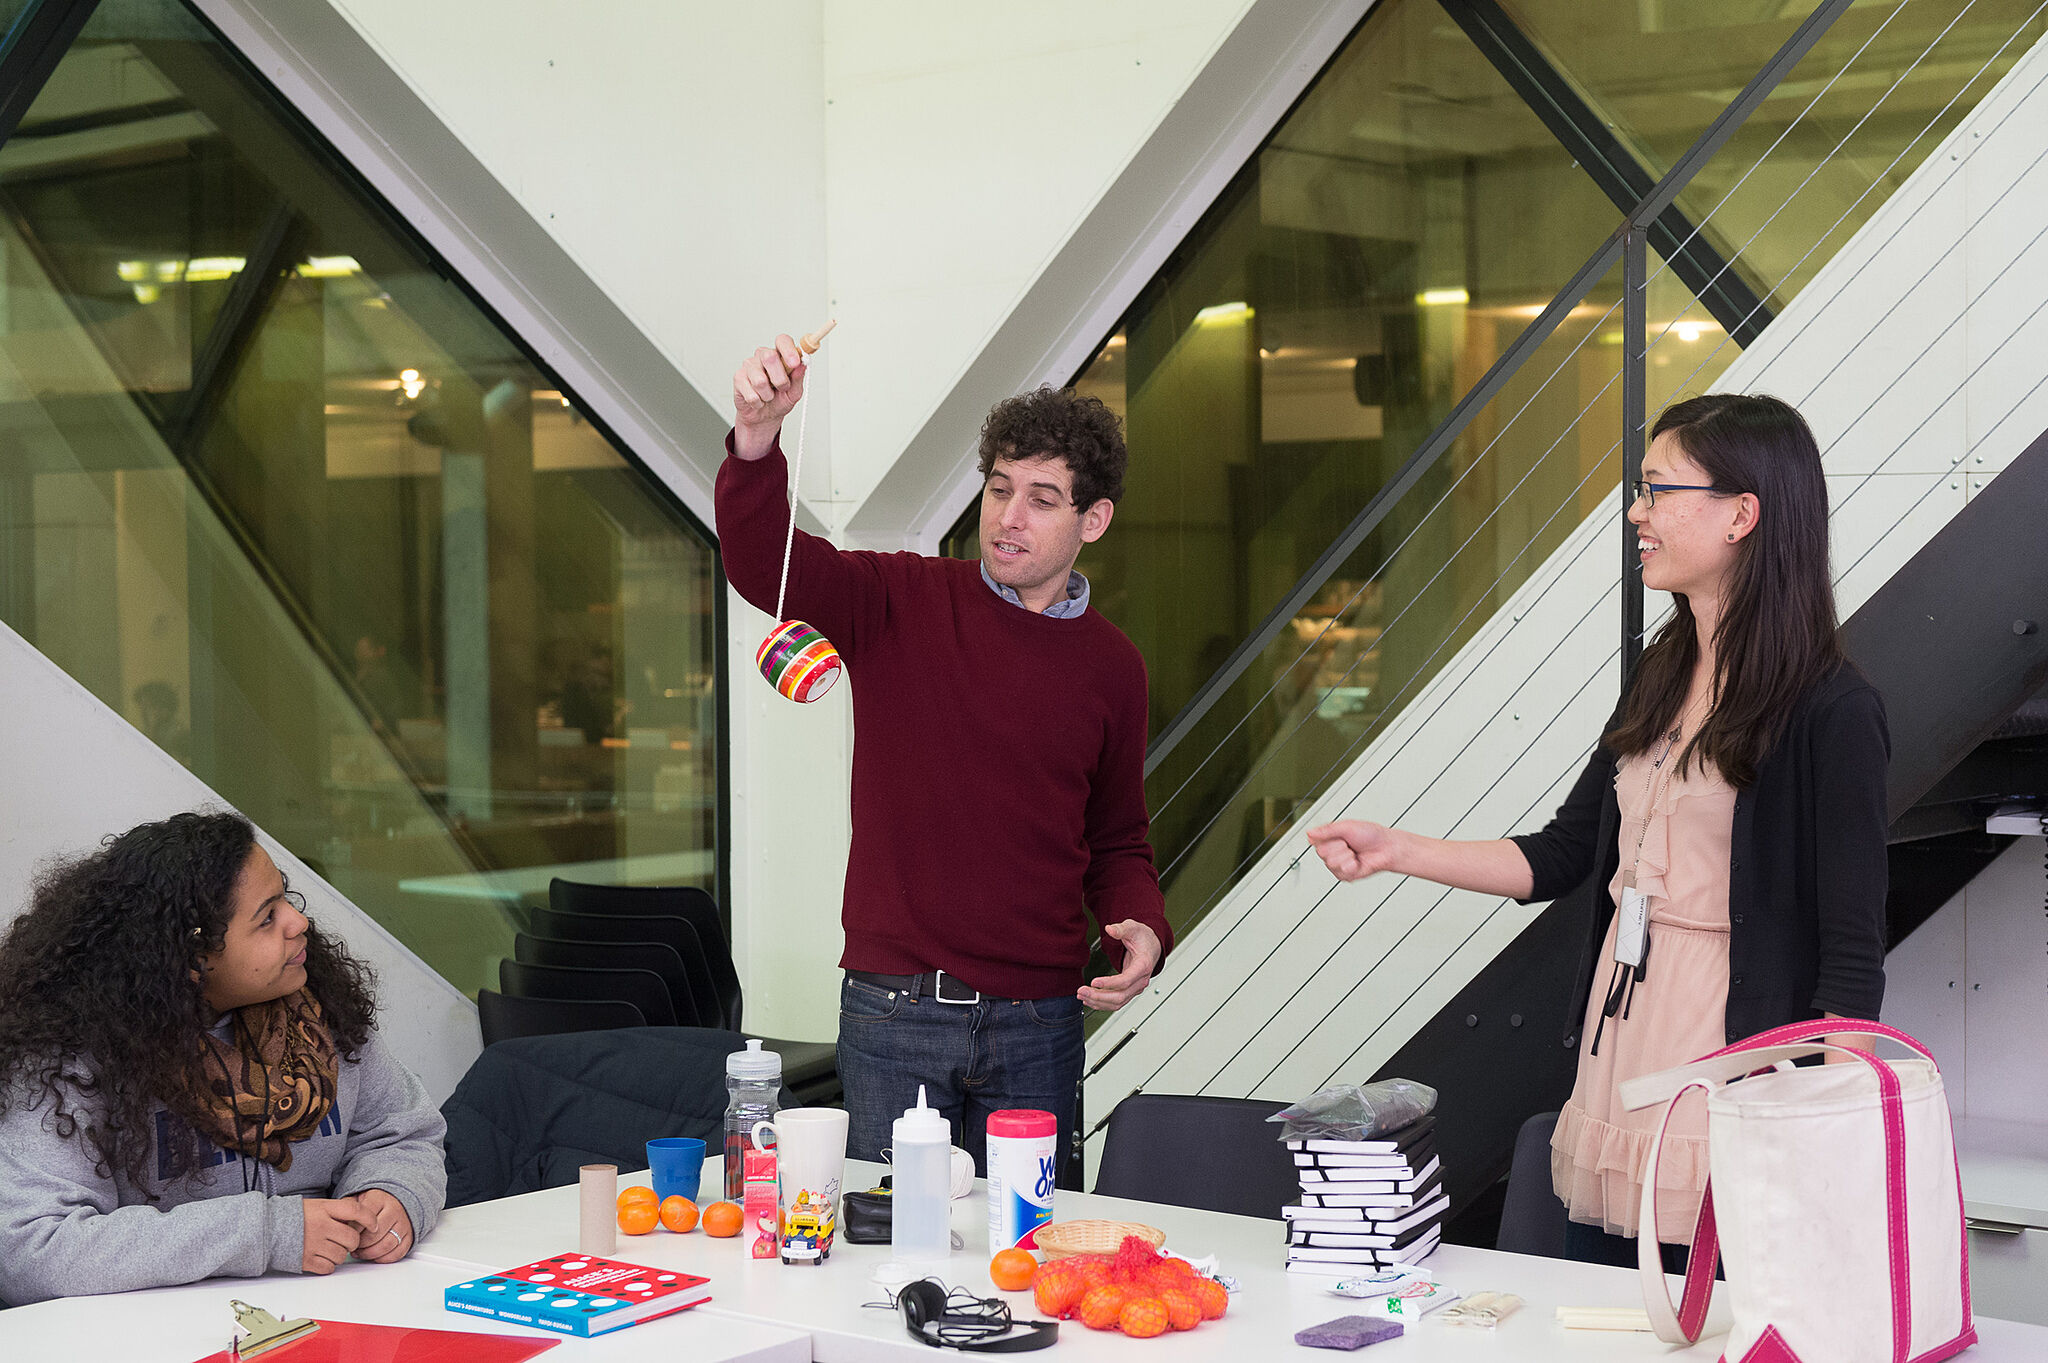 The artist demonstrates an object in front of two teens.